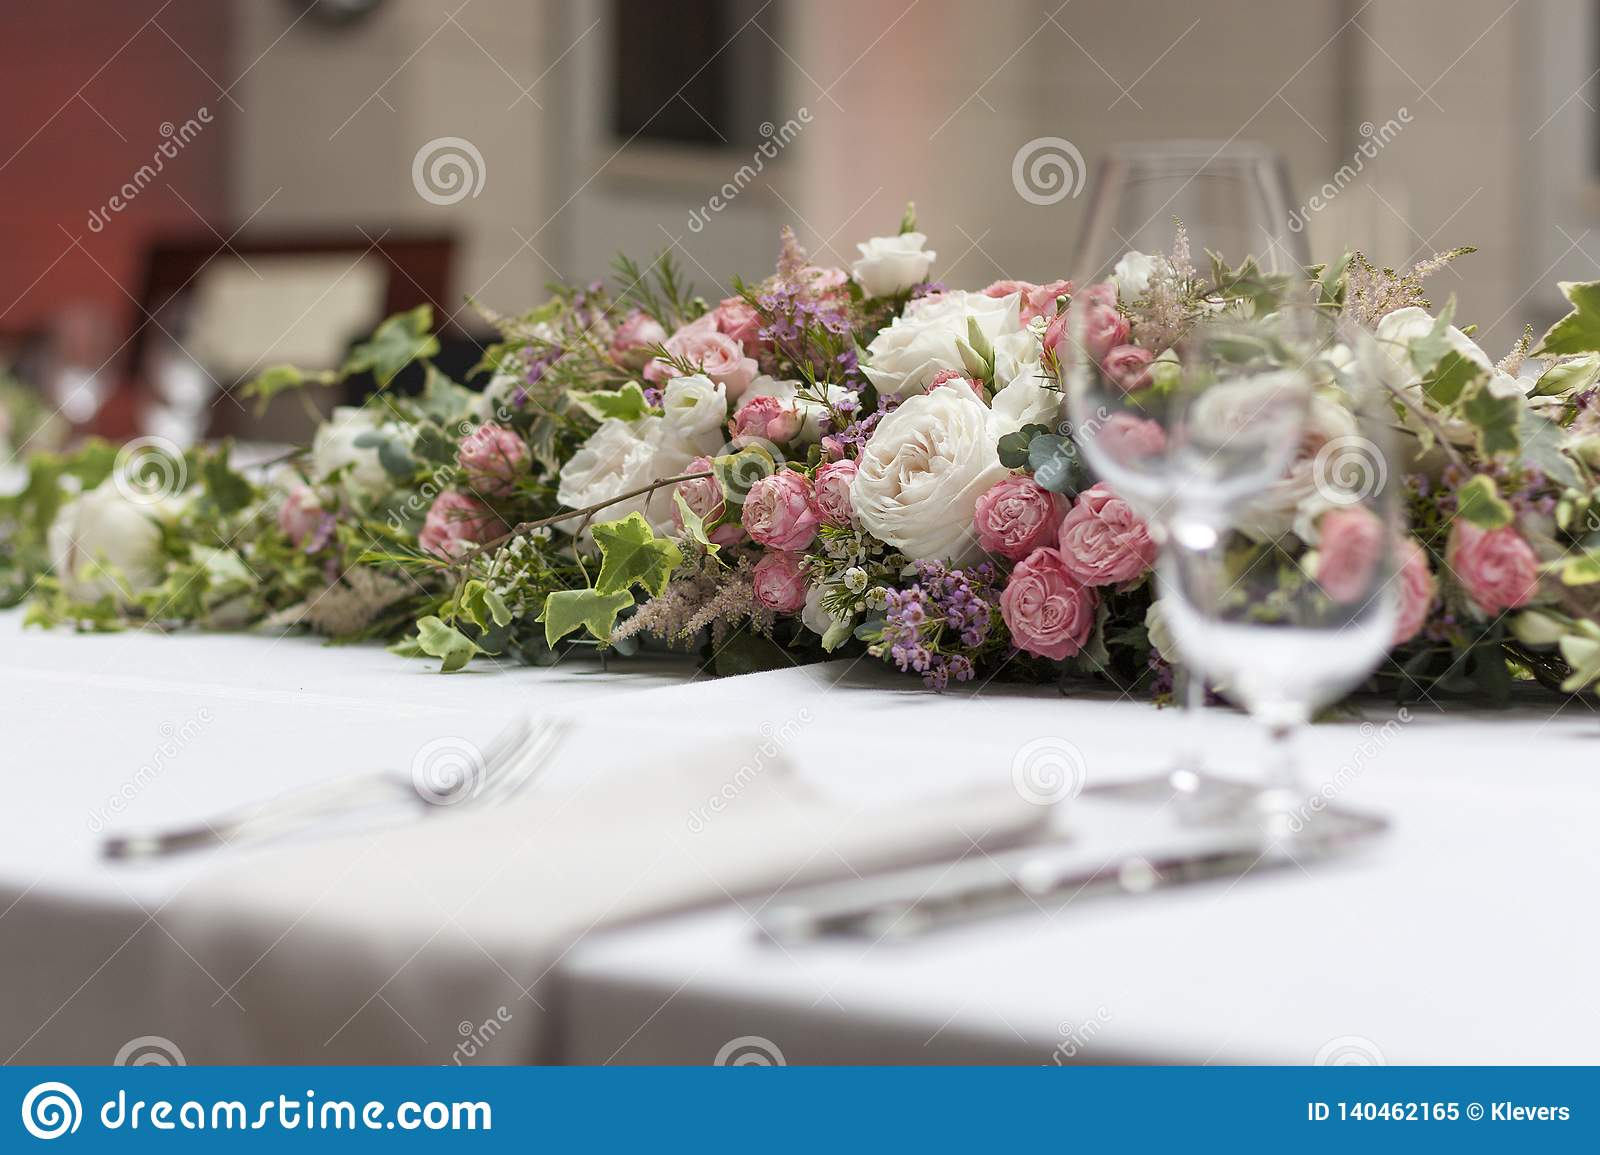 Beautiful Floral Arrangement On The Table On The Wedding Day In The Restaurant Stock Image Image Of Action Arrangements 140462165